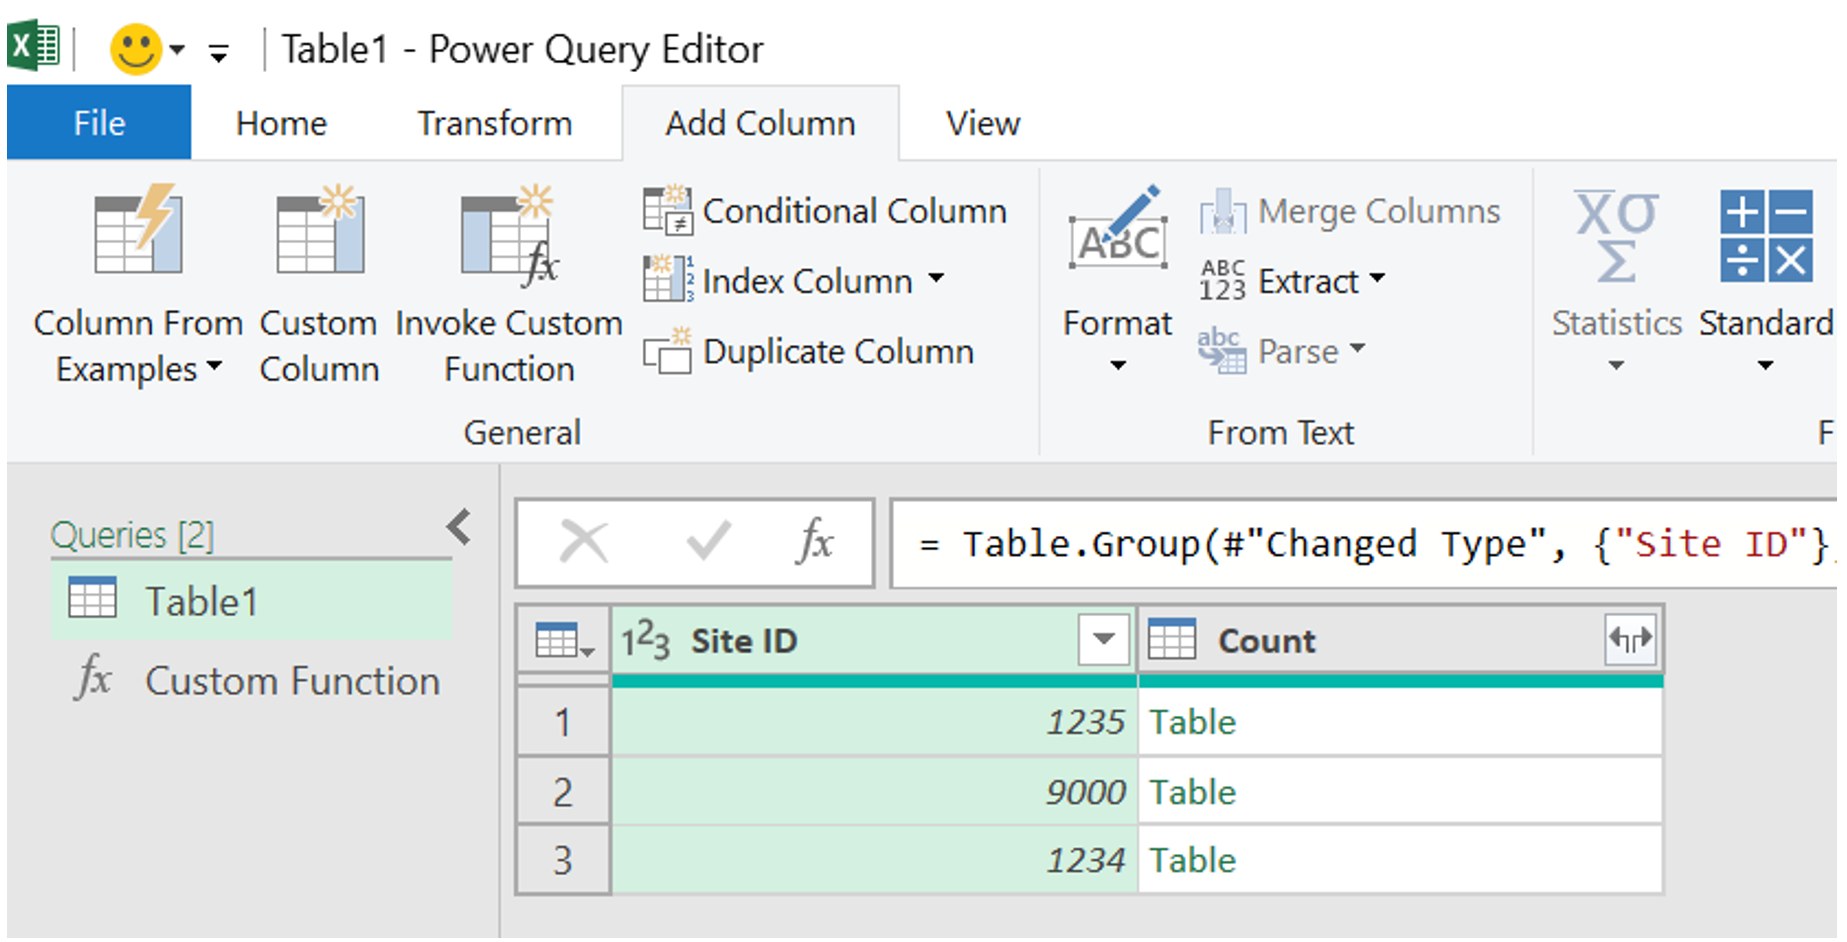 Table 1 in the Power Query Editor